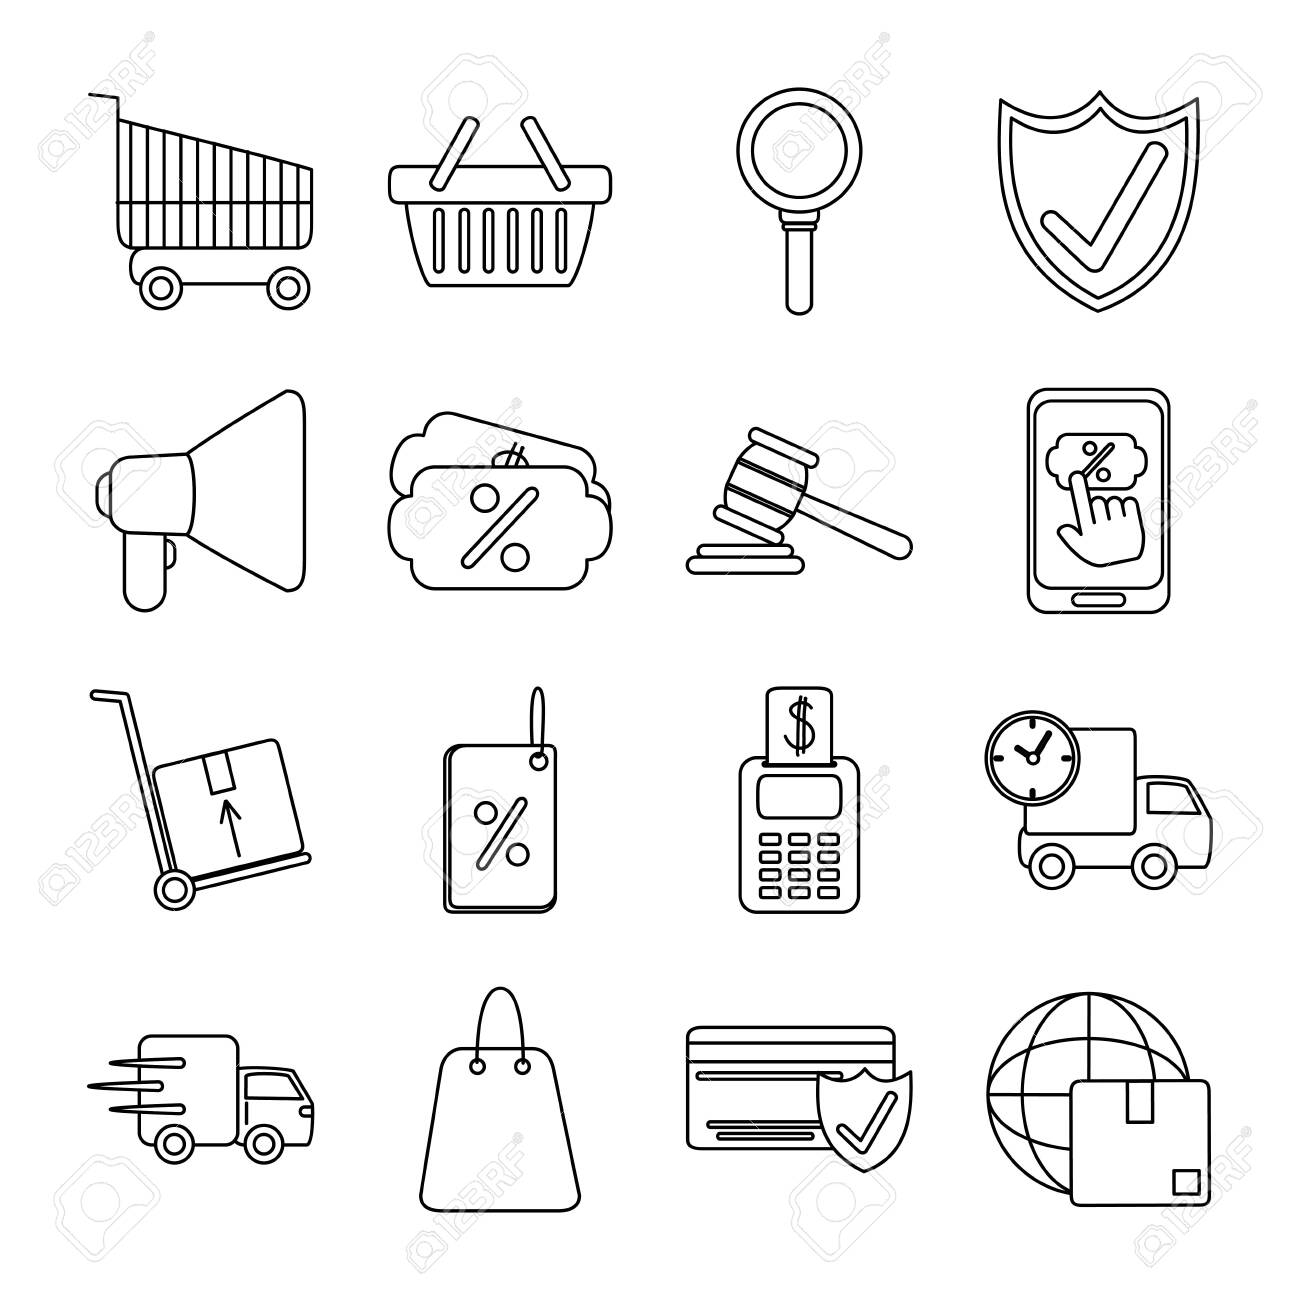 online shopping mobile marketing and e-commerce icons set line style vector illustration - 147961164